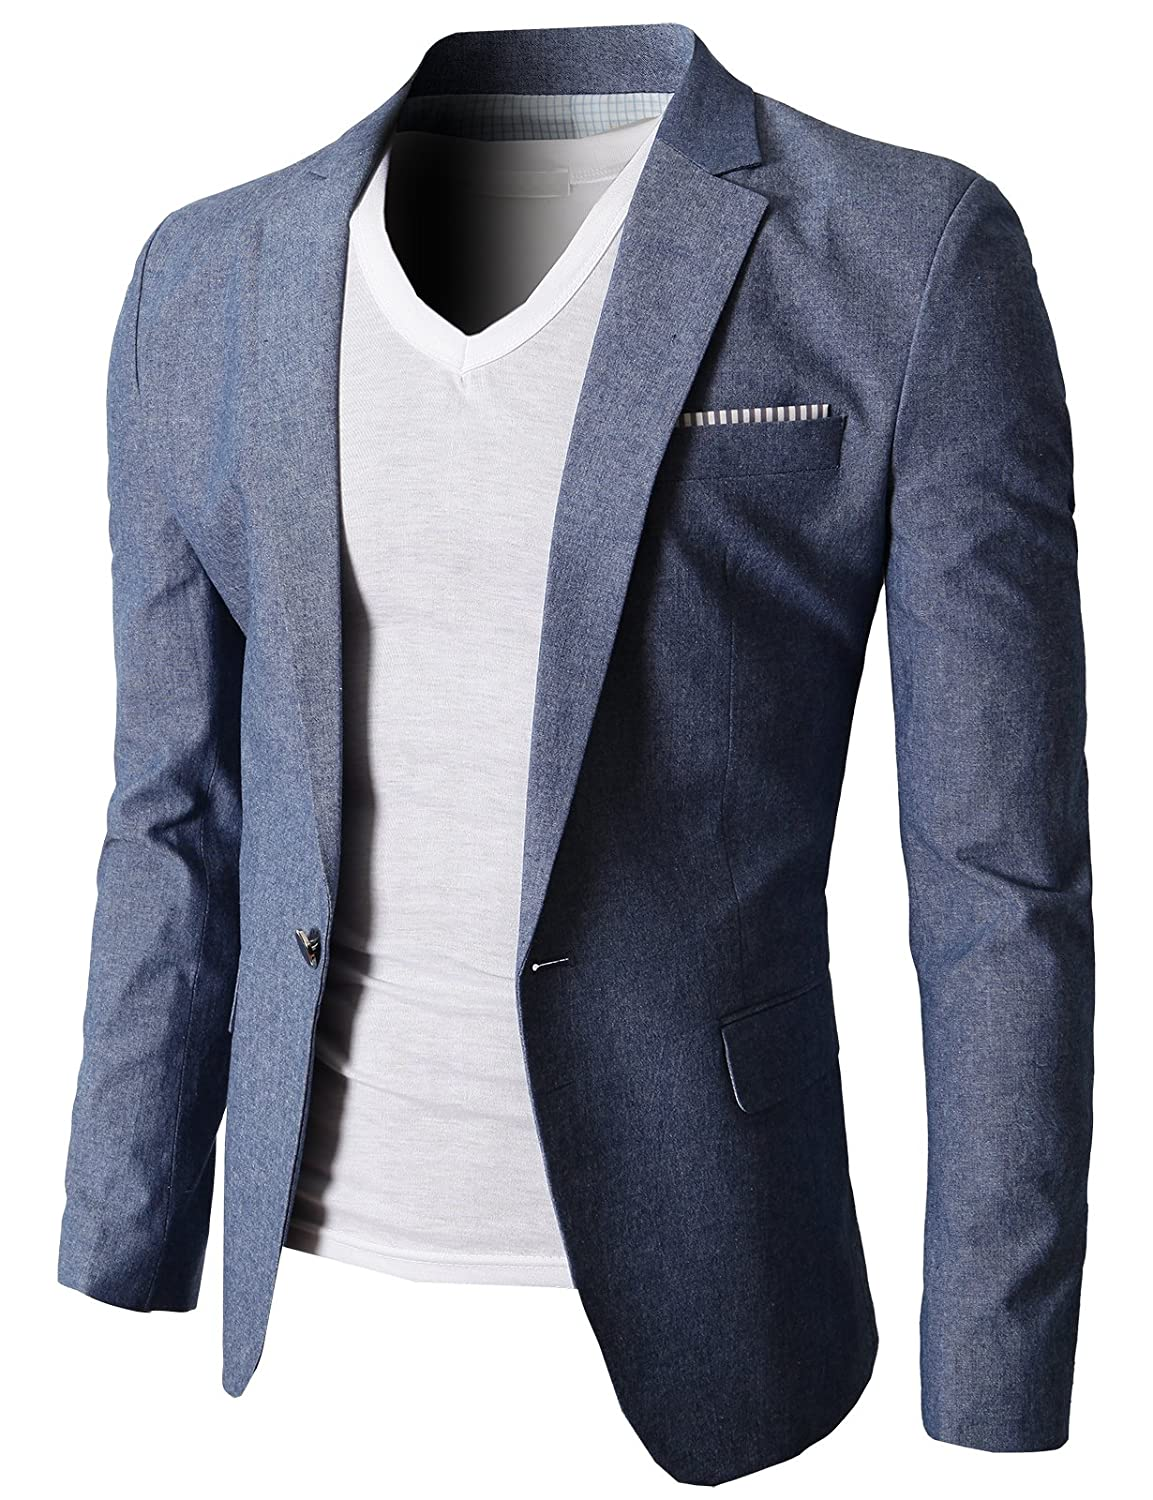 Jacket required? Cool. Our collection of men's blazers, sport coats and suit vests has something for every guy to wear to pretty much every occasion, whether it's superformal or downright casual.